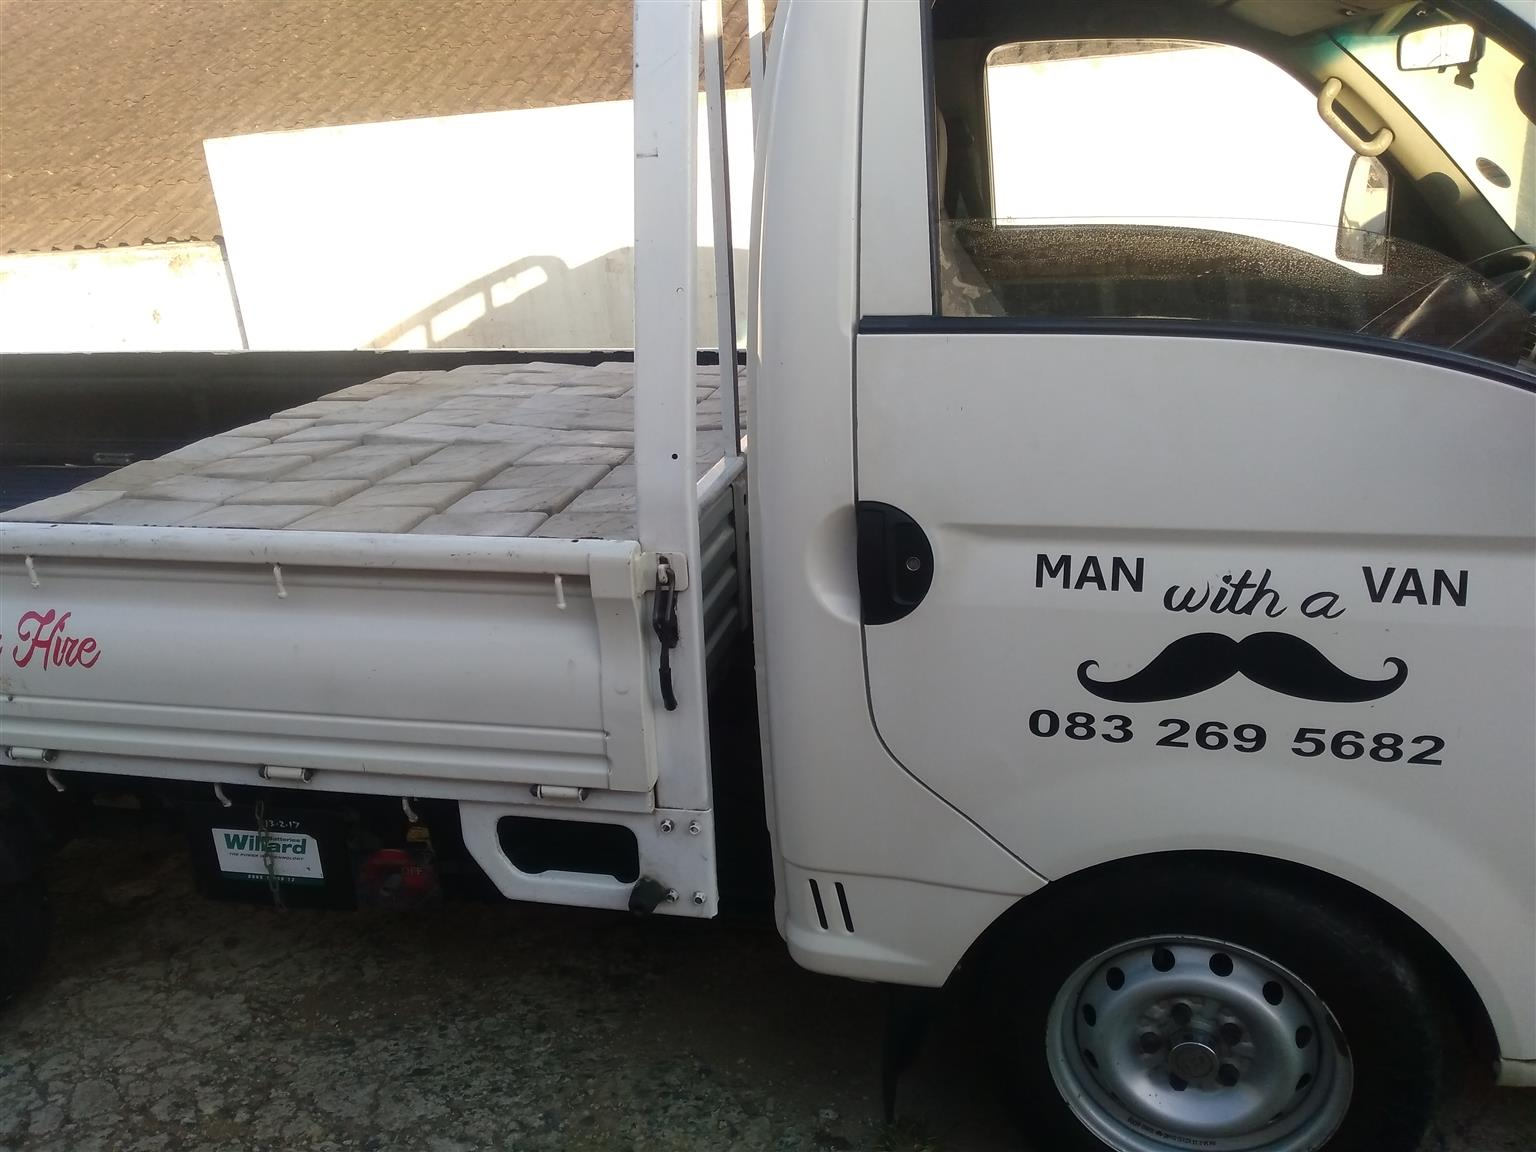 Bakkie for Hire - WE WILL BEAT EVERY QUOTATION!